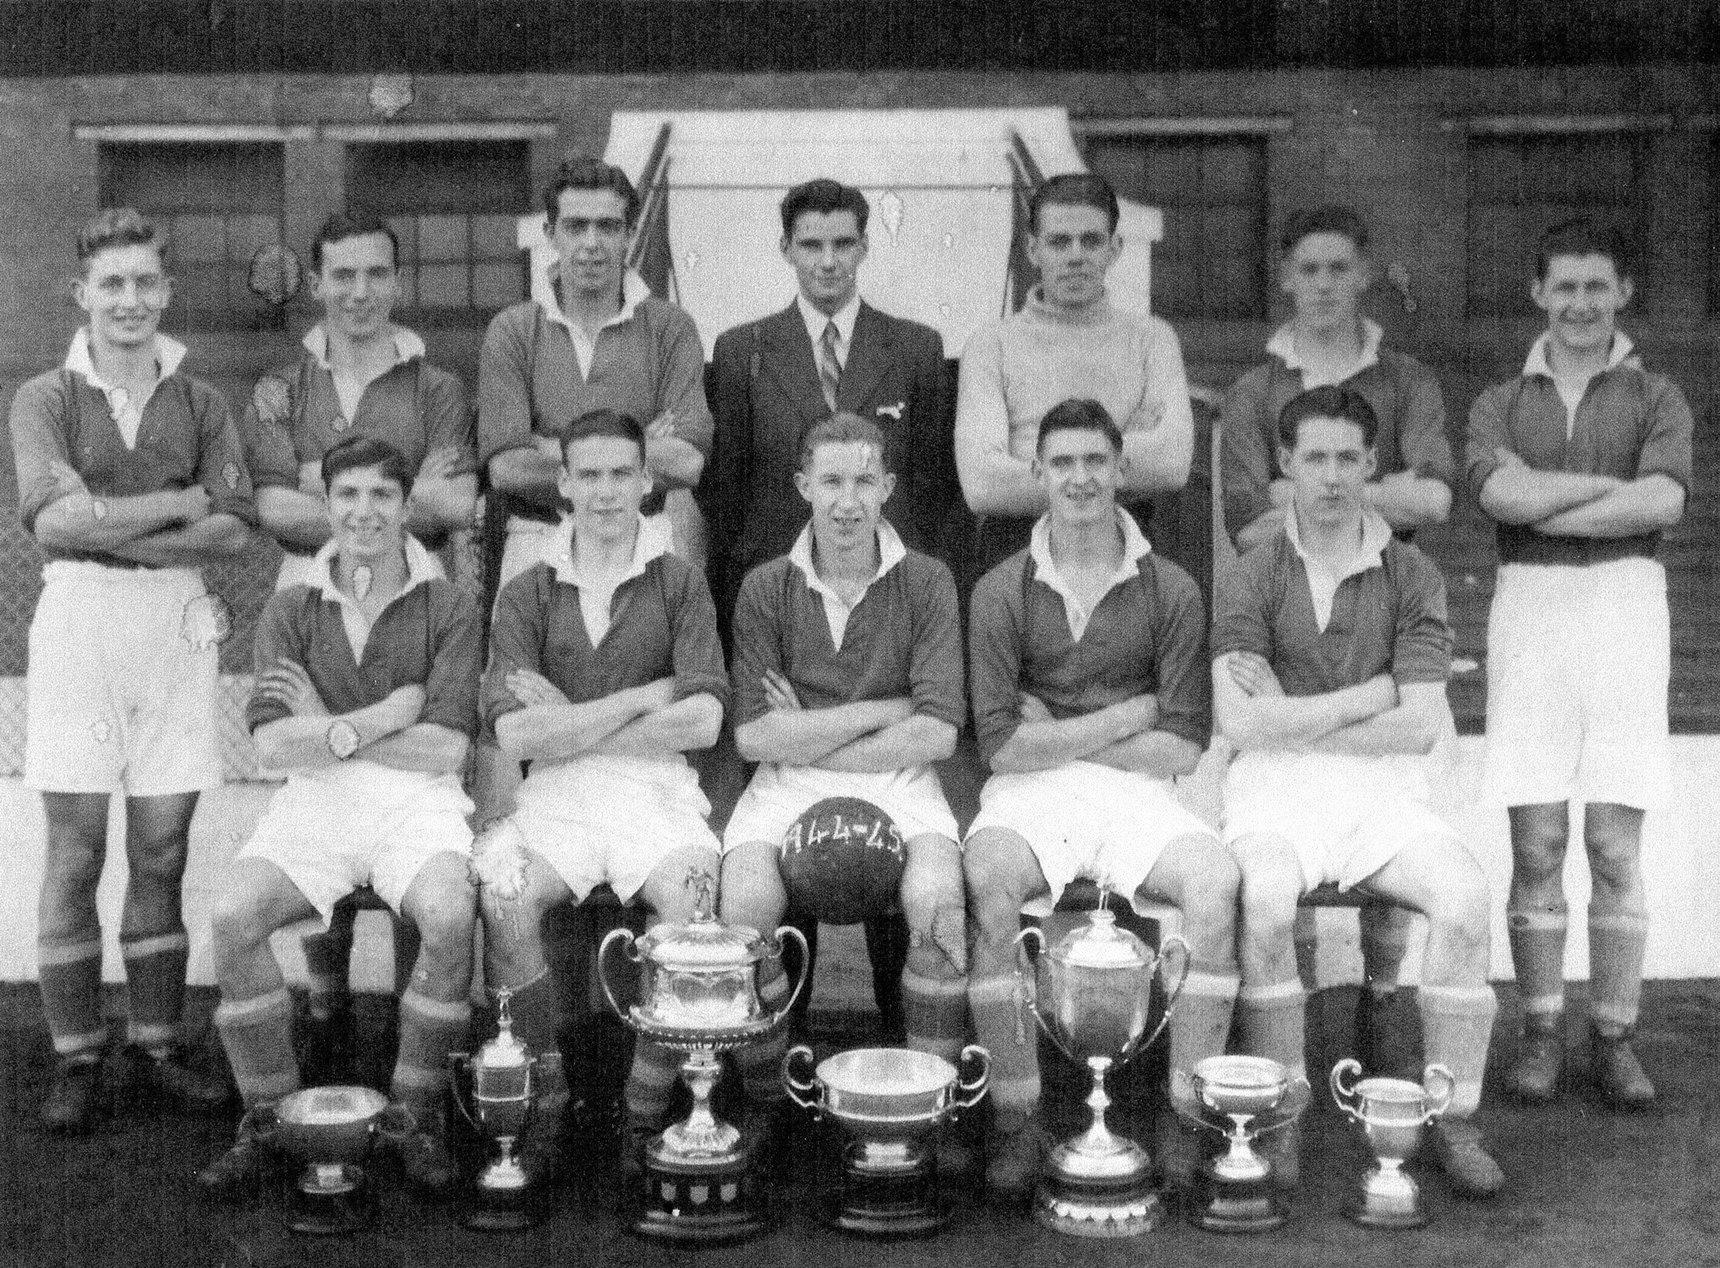 Edinburgh Thistle Football Club Team, Players Insurance Cups and Manclark Tournament 1945